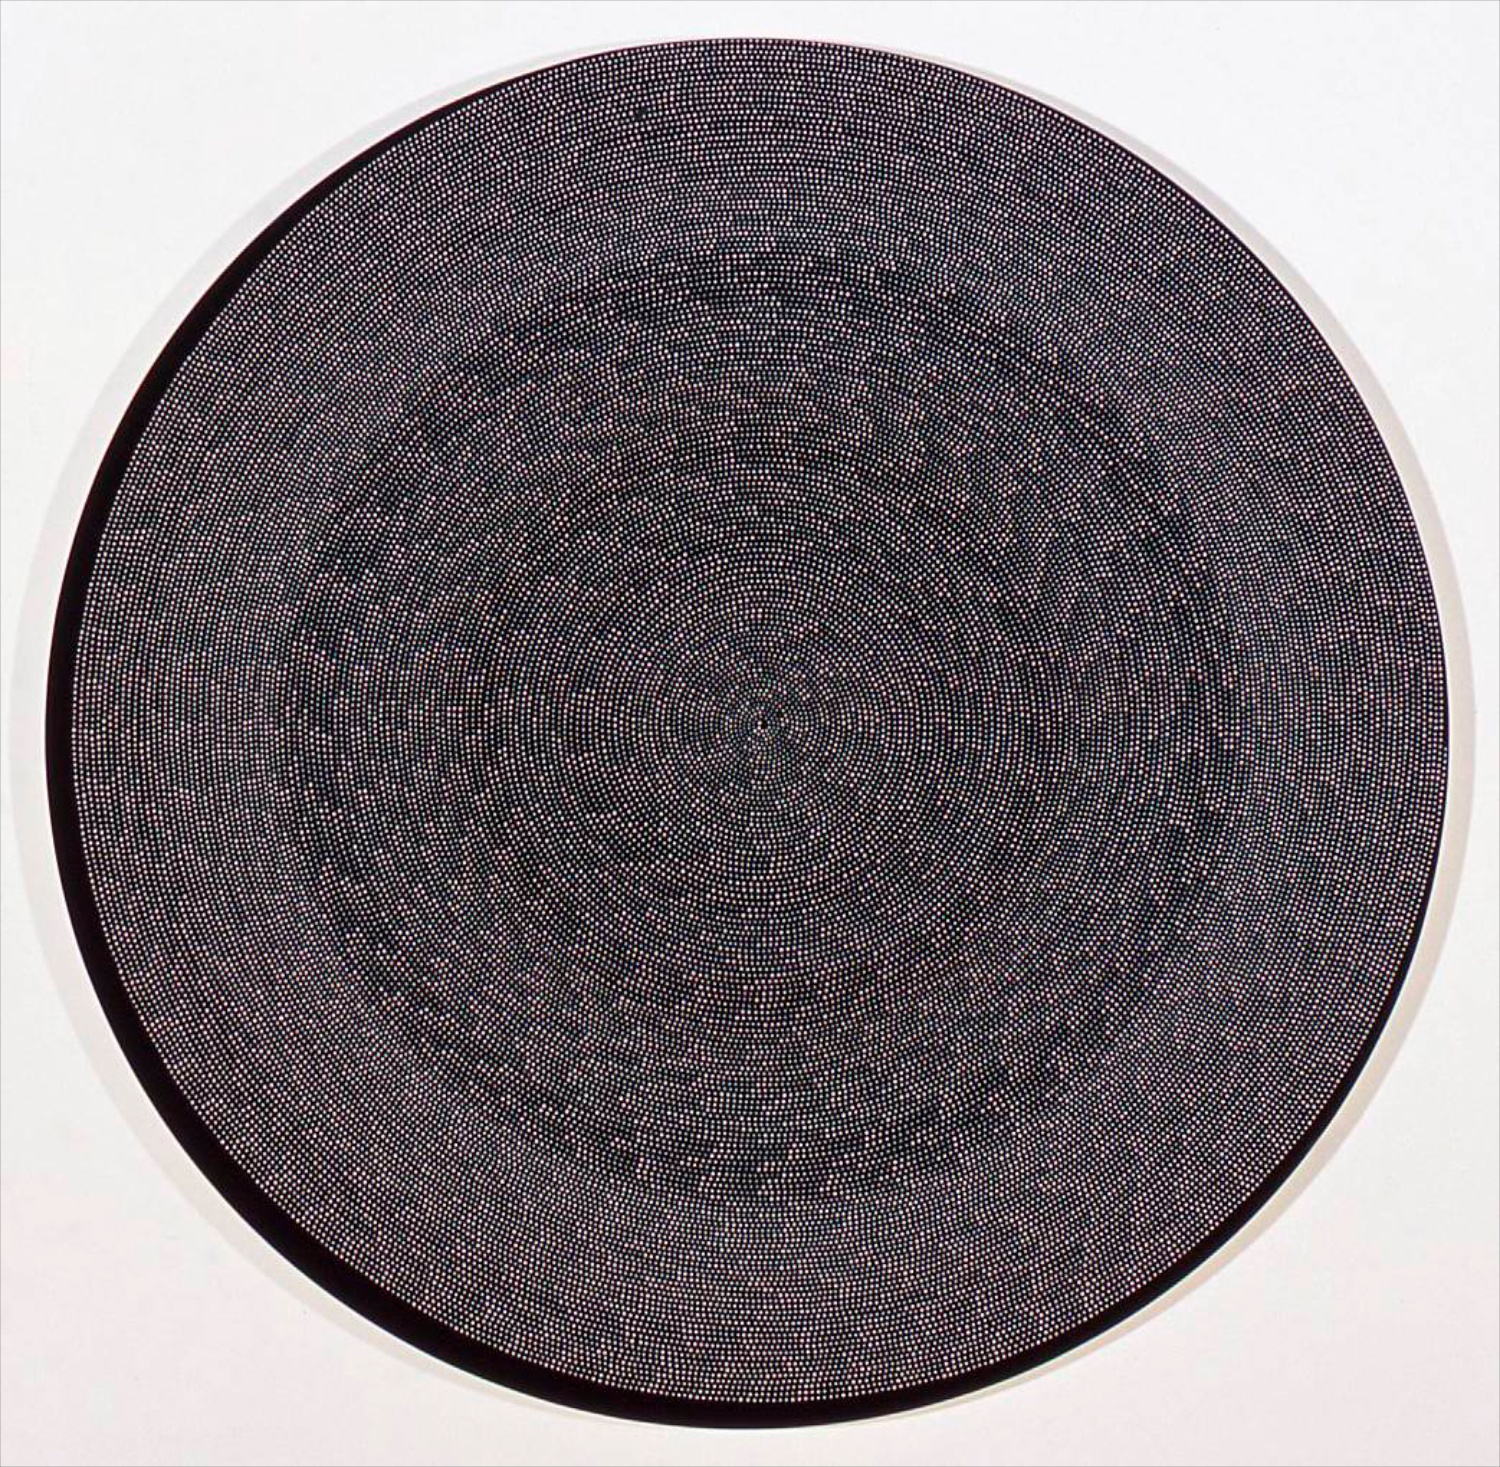 "Michelle Grabner Untitled 2006 Flashe on canvas 50"" diameter MGrab023"